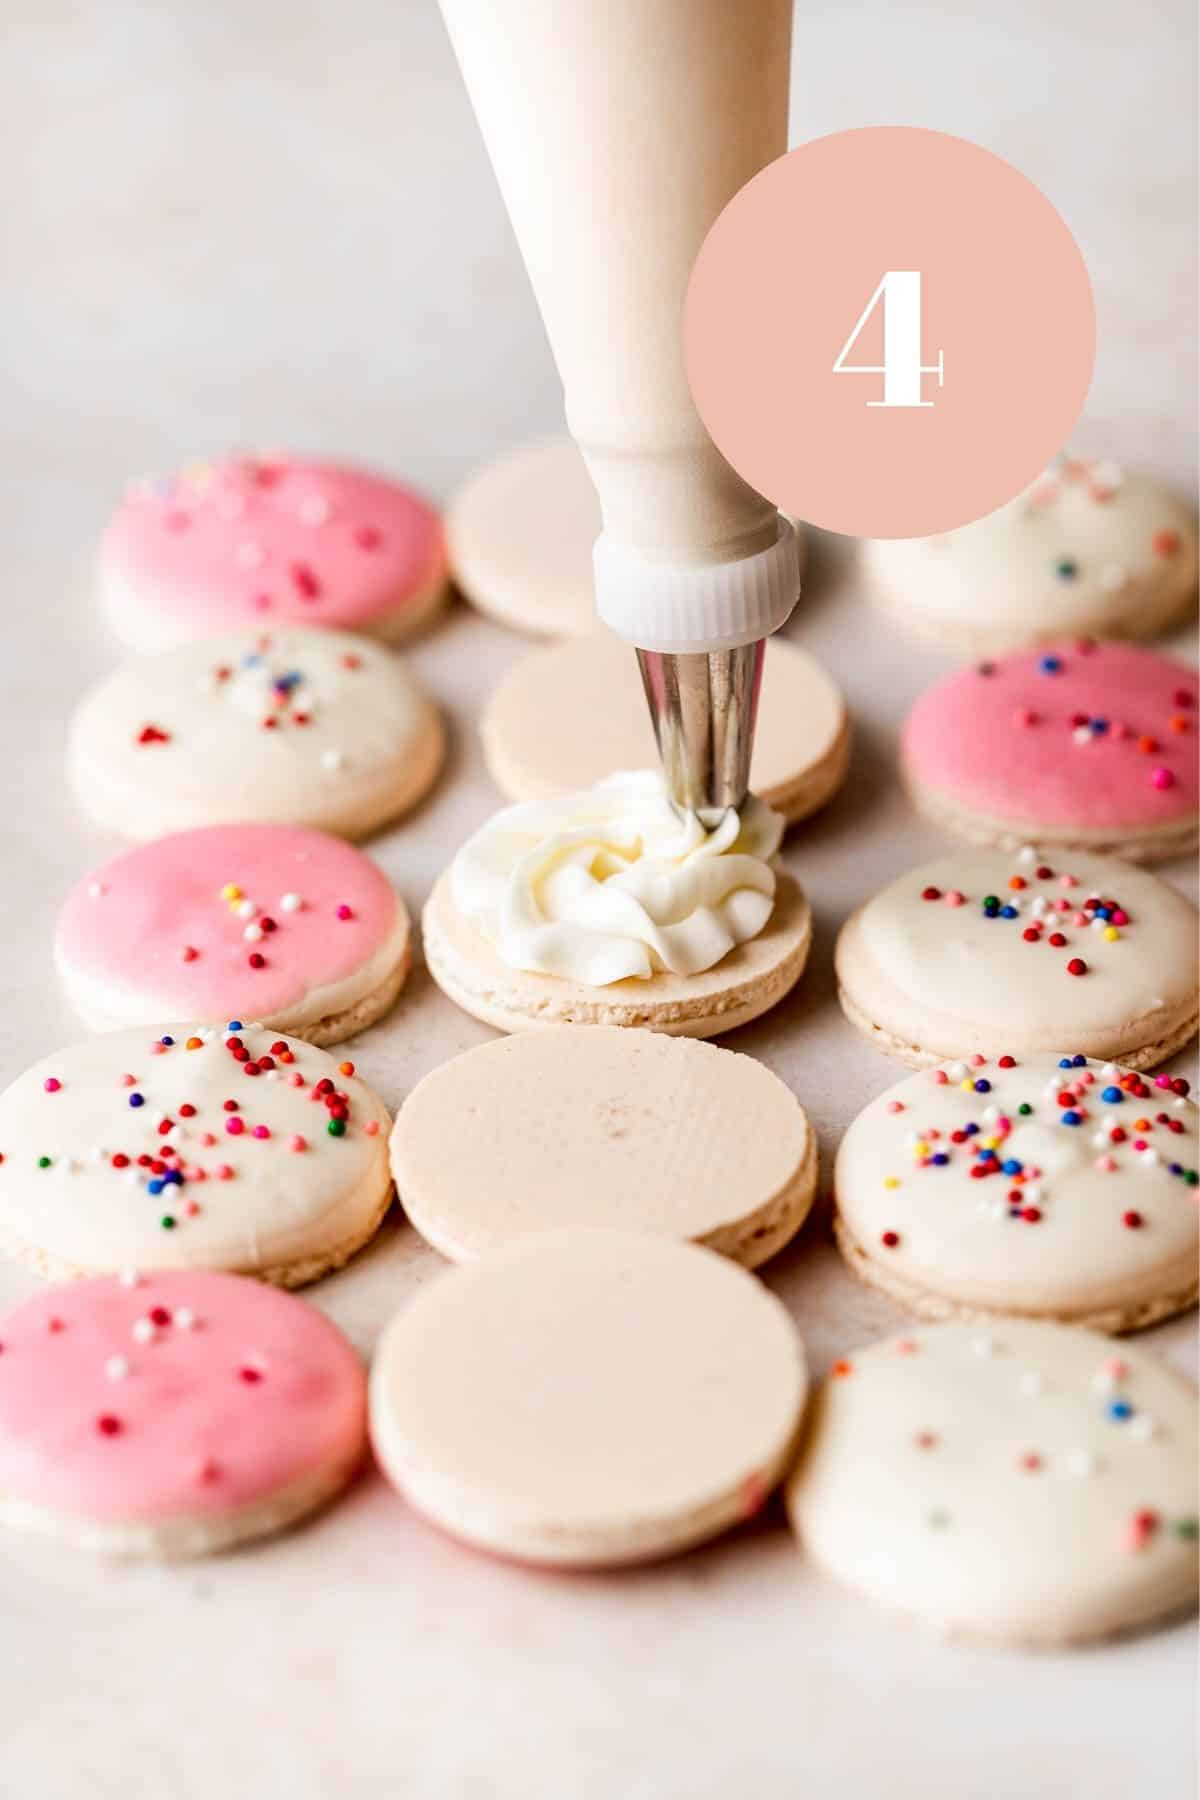 piping the cake batter buttercream on the birthday cake macarons.